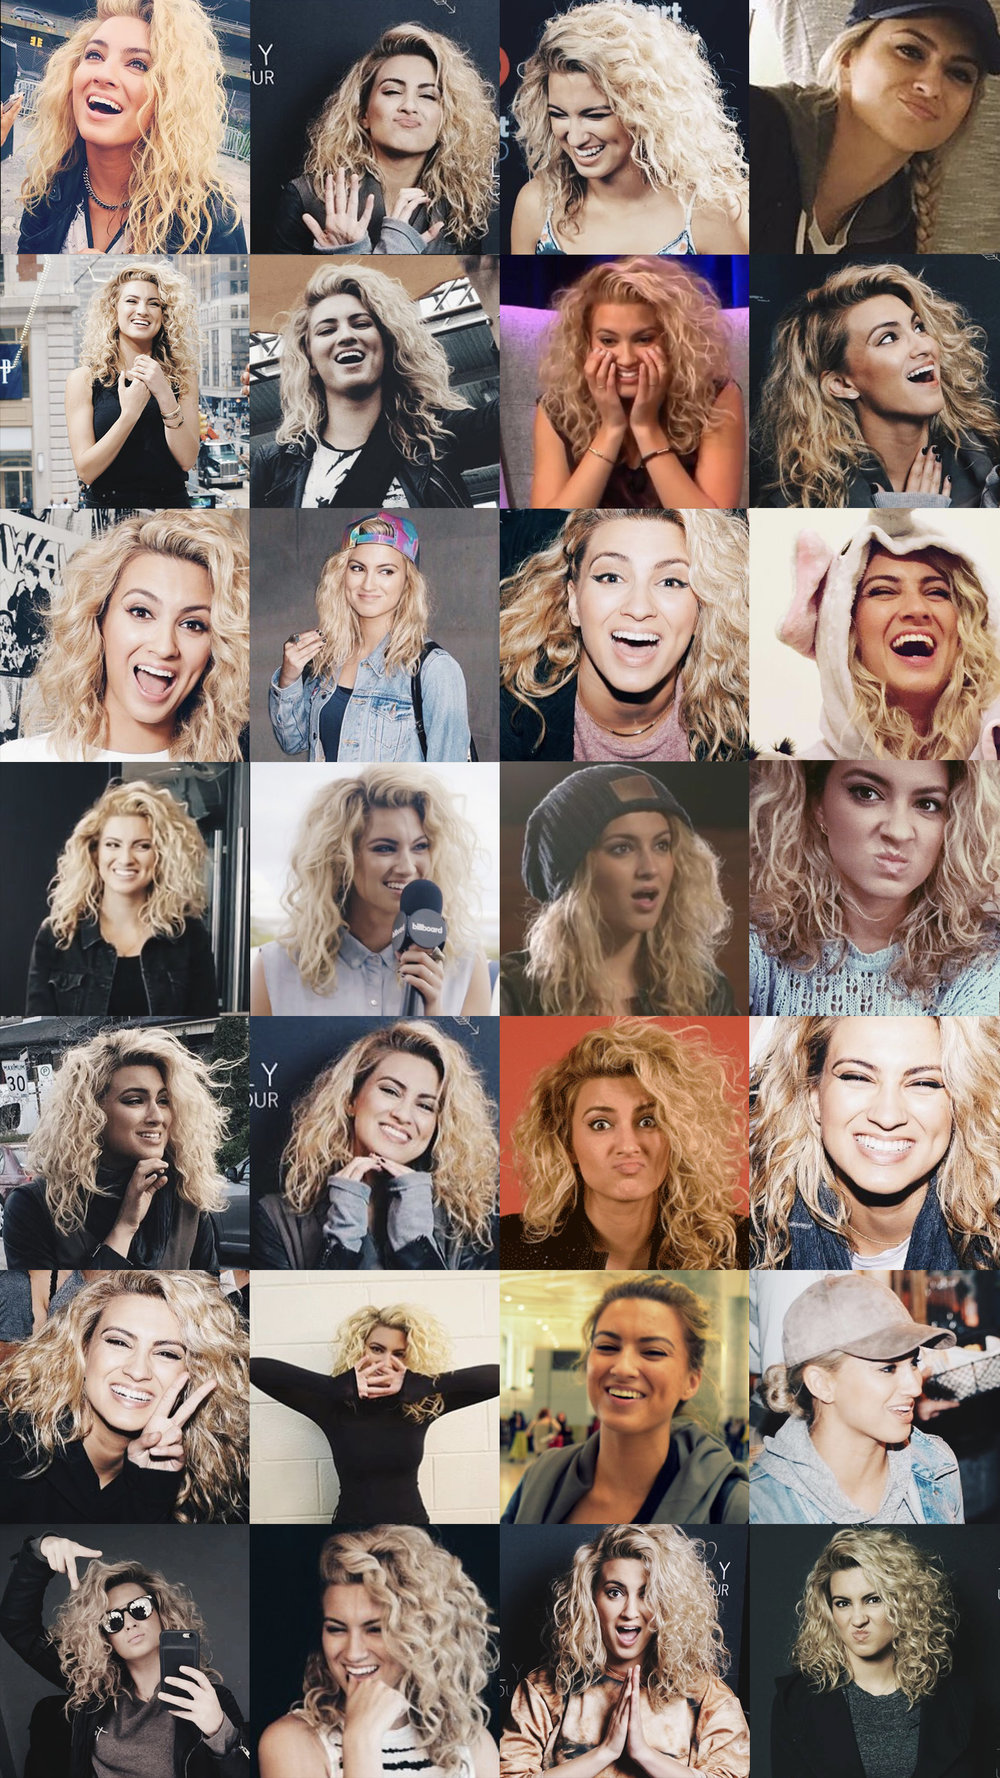 torikelly-lockscreen27.jpg